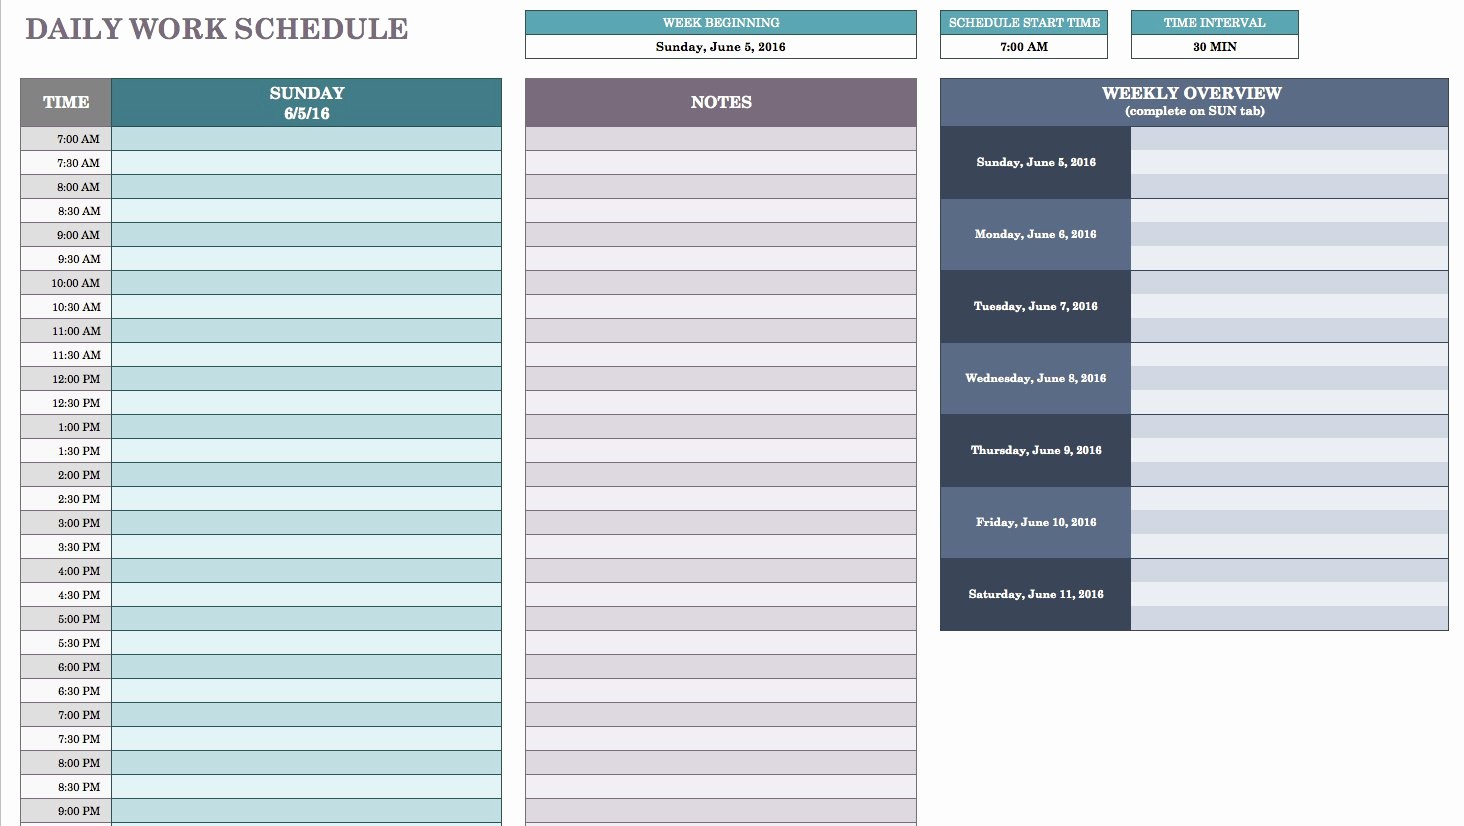 Microsoft Excel Weekly Schedule Template New Free Daily Schedule Templates for Excel Smartsheet